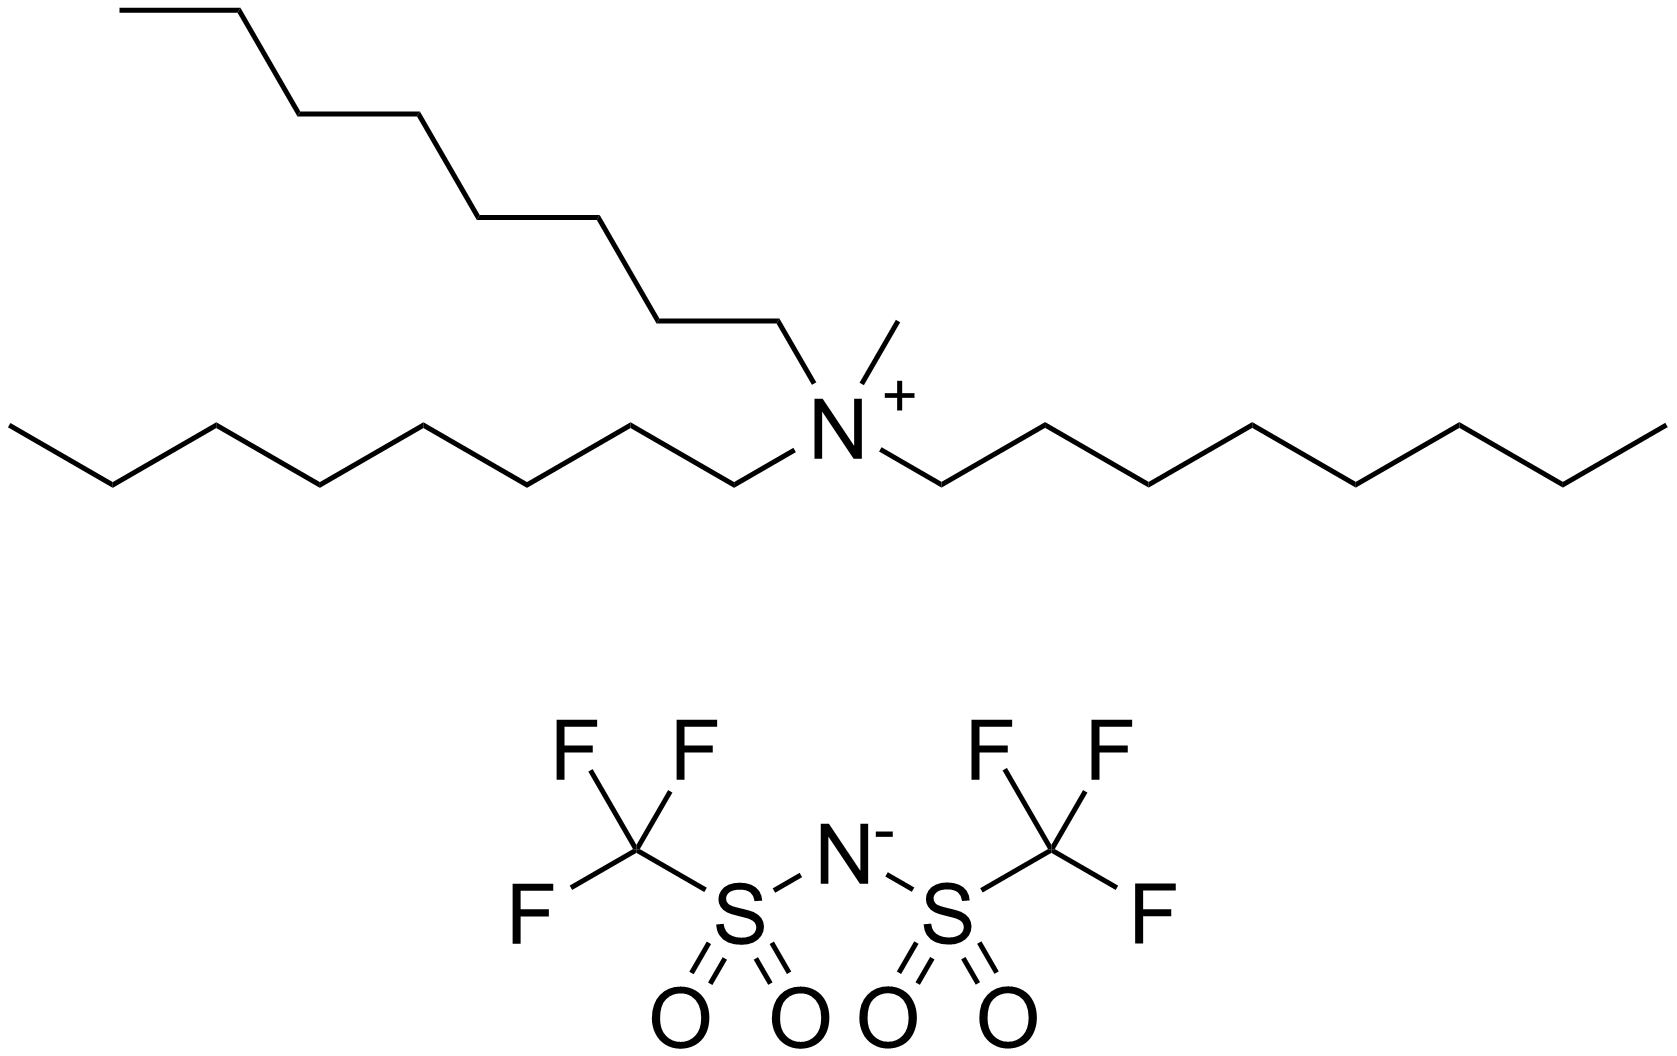 chemical structure of a methyl ammonium and b